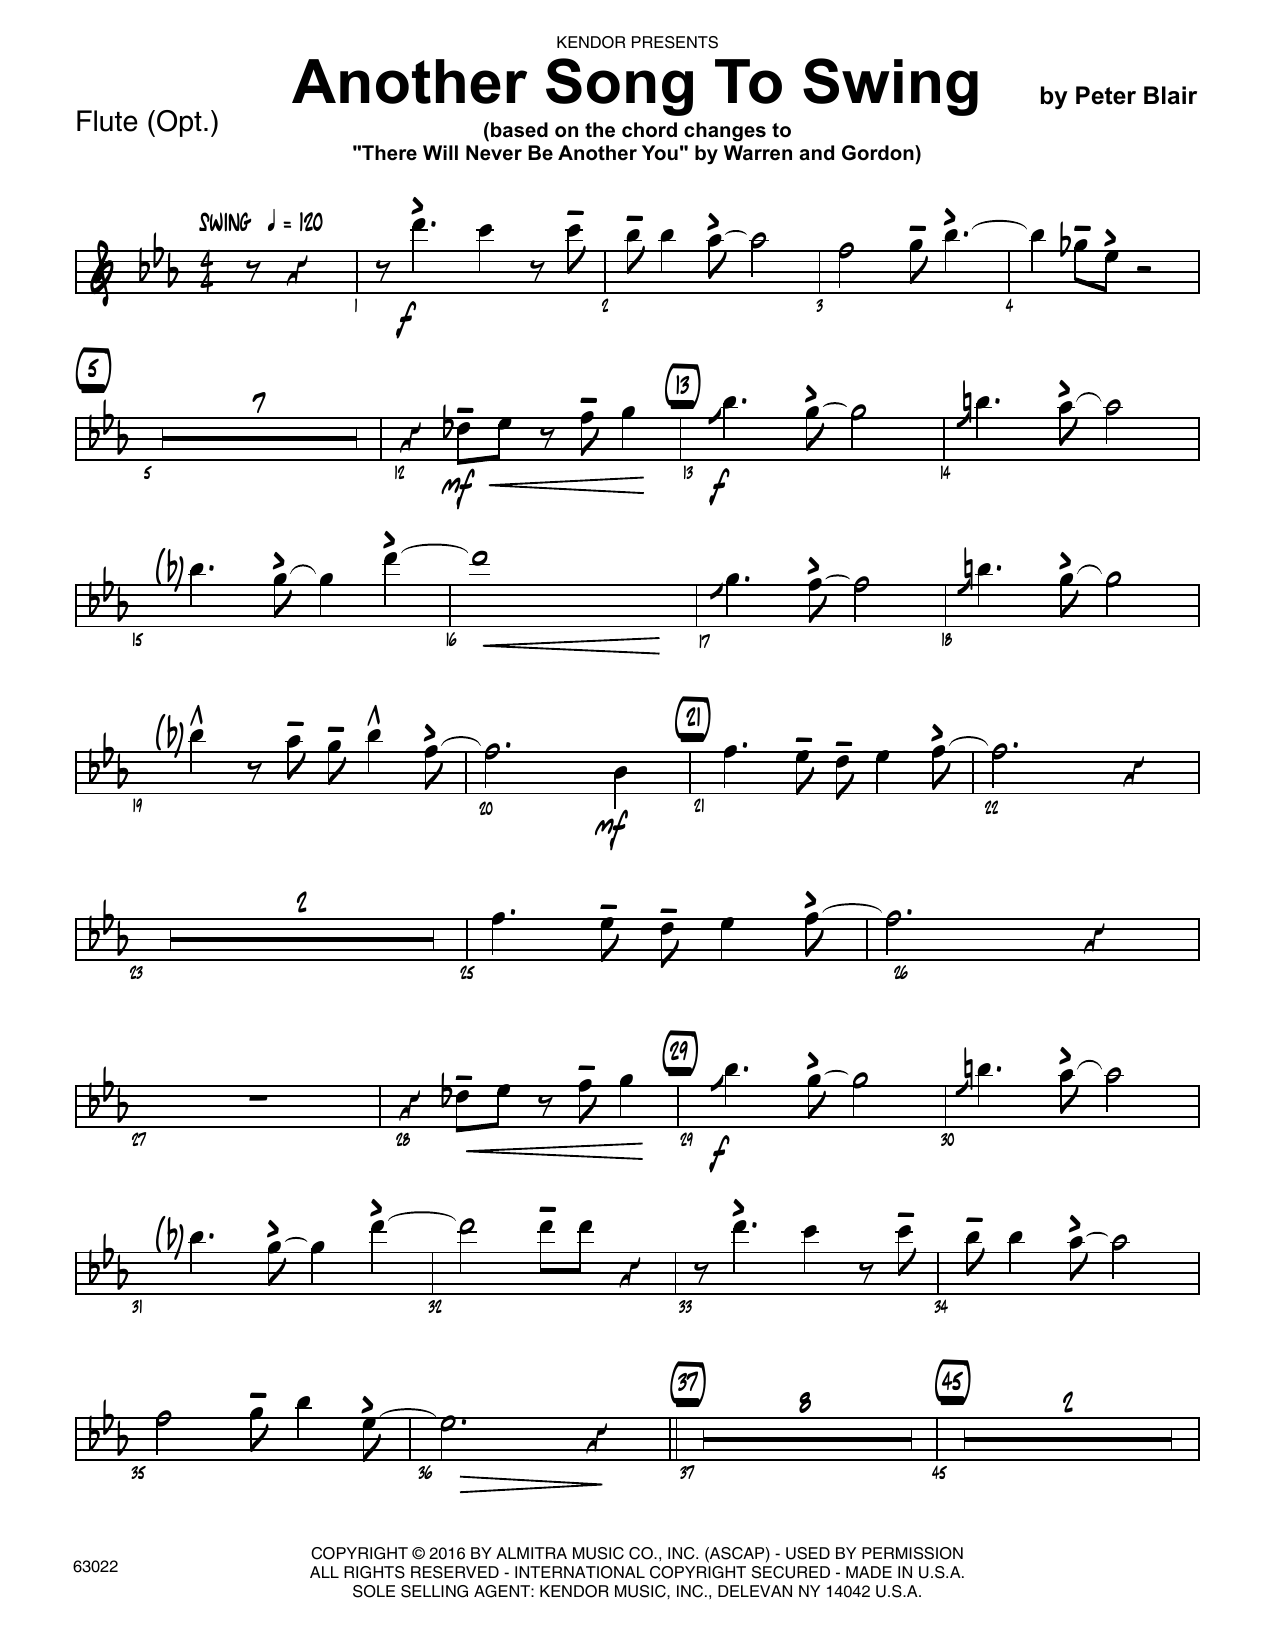 Another Song To Swing - Flute Sheet Music